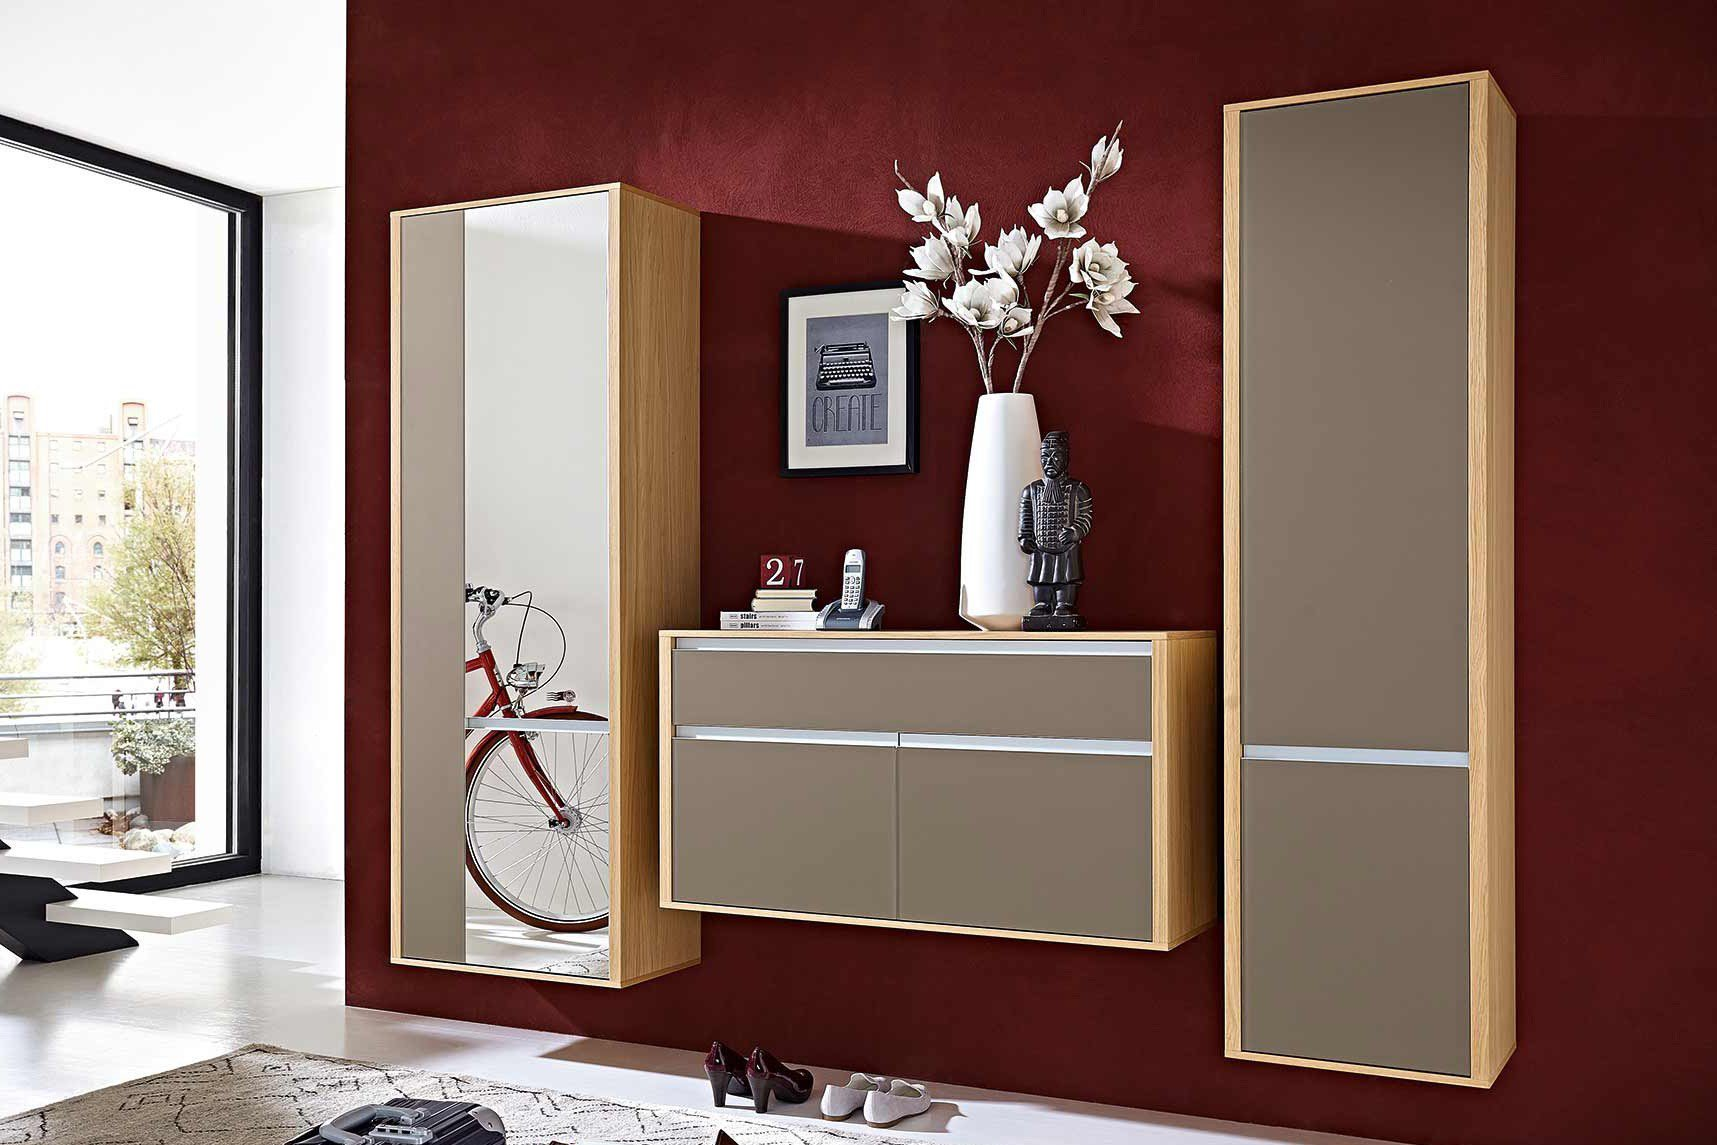 garderobe bari in eiche braun von leinkenjost m bel letz ihr online shop. Black Bedroom Furniture Sets. Home Design Ideas